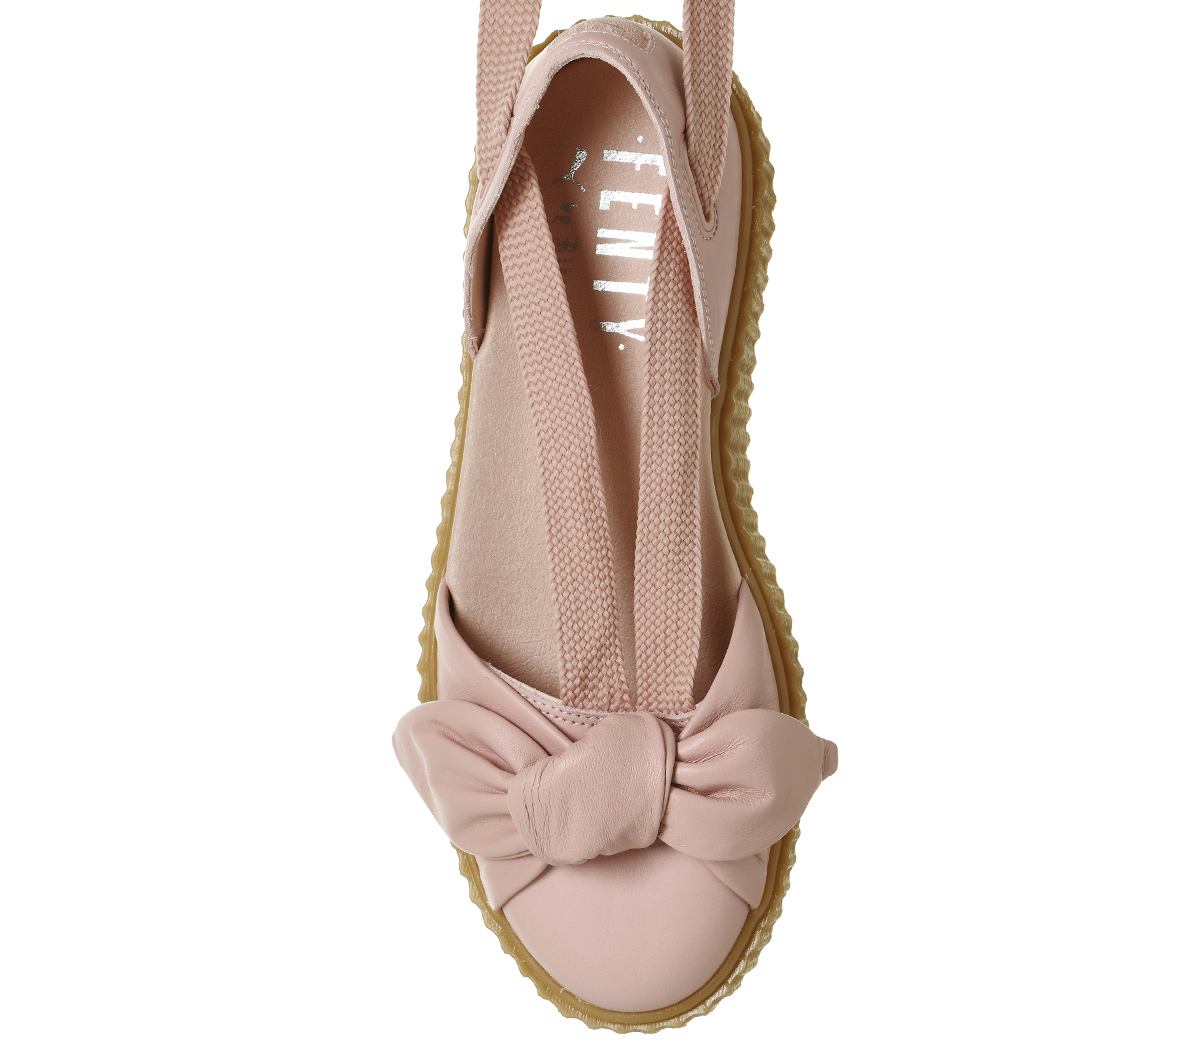 Womens-Puma-Creeper-Ballet-Lace-Pink-Fenty-Sandals thumbnail 17